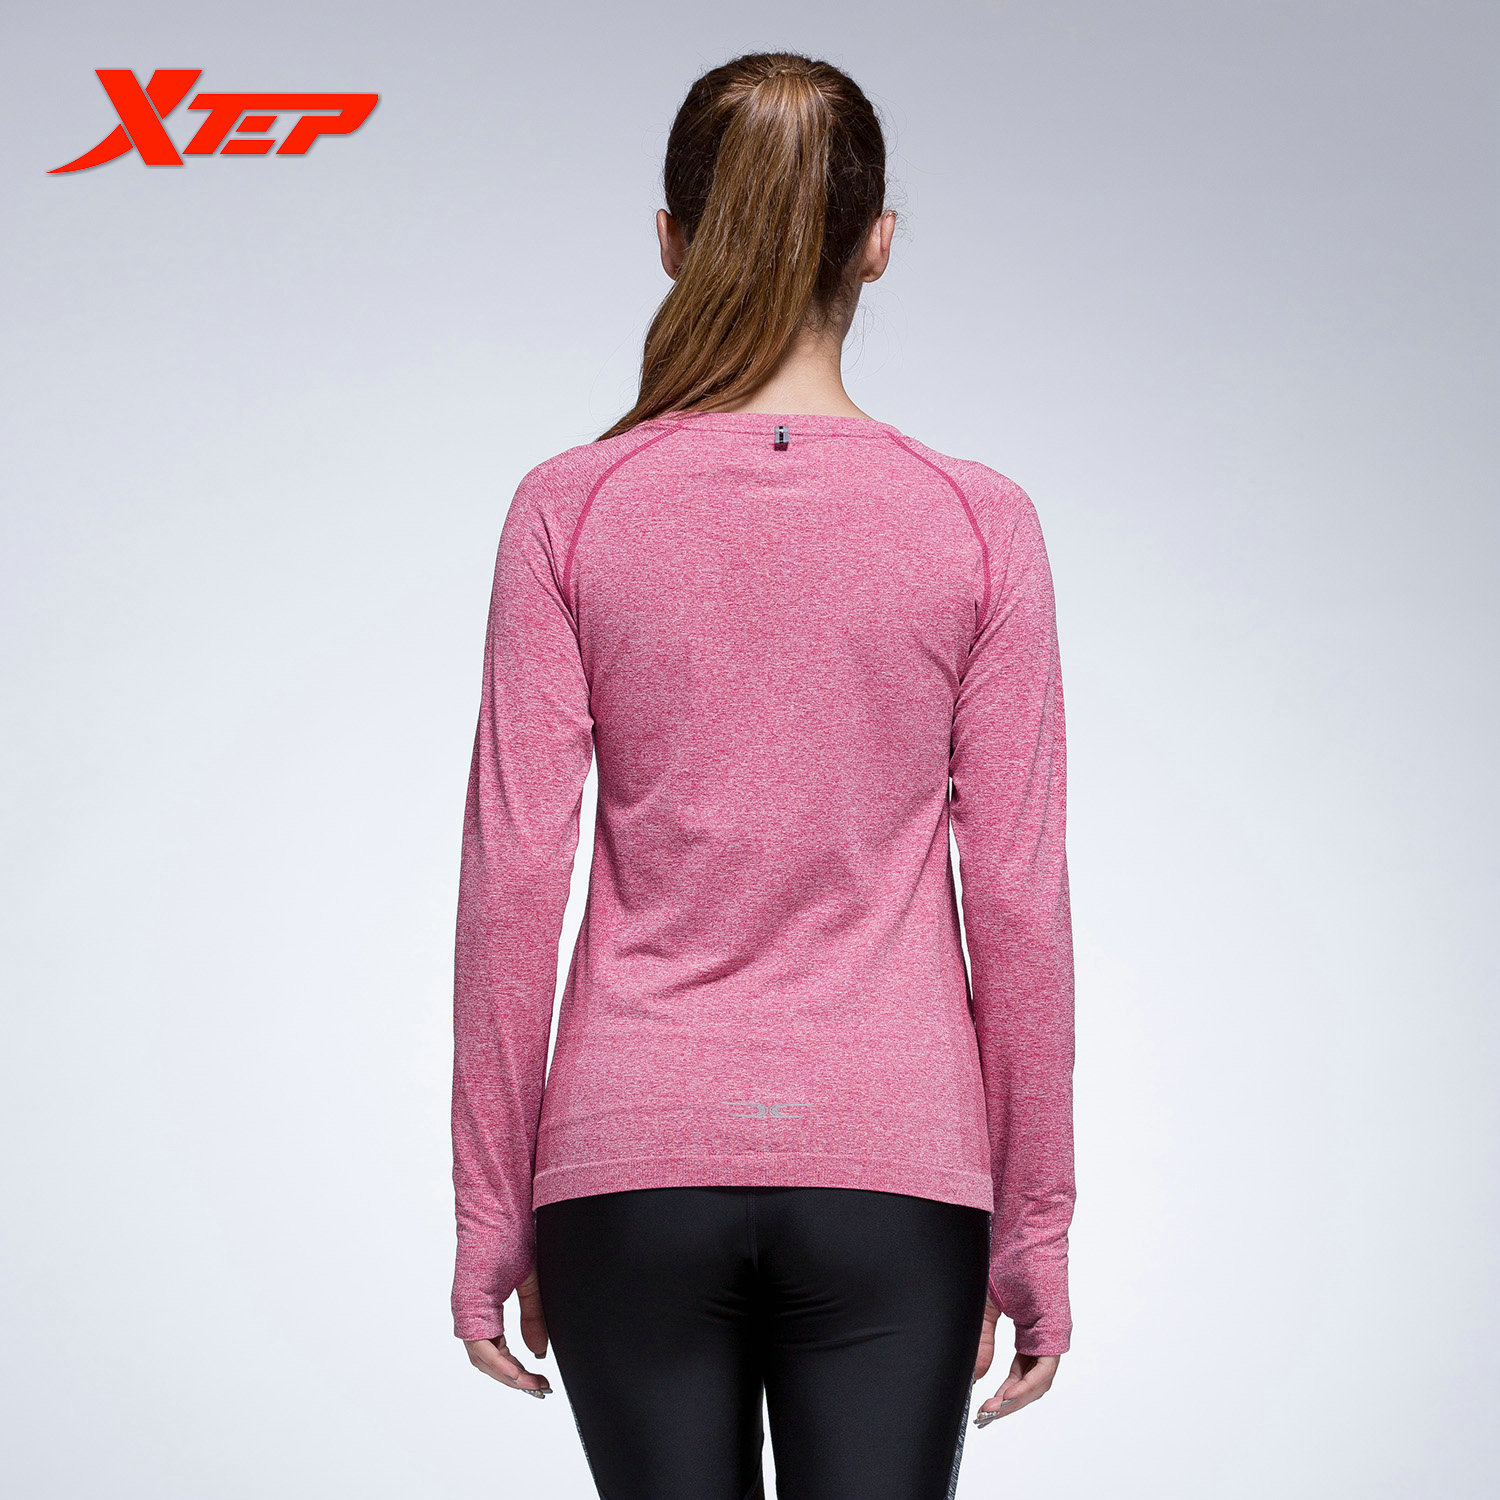 XTEP Women's Long Sleeve Running Shirts Tops Compression Tights Yoga Shirts Sportswear Fitness Workout Quick Dry ...